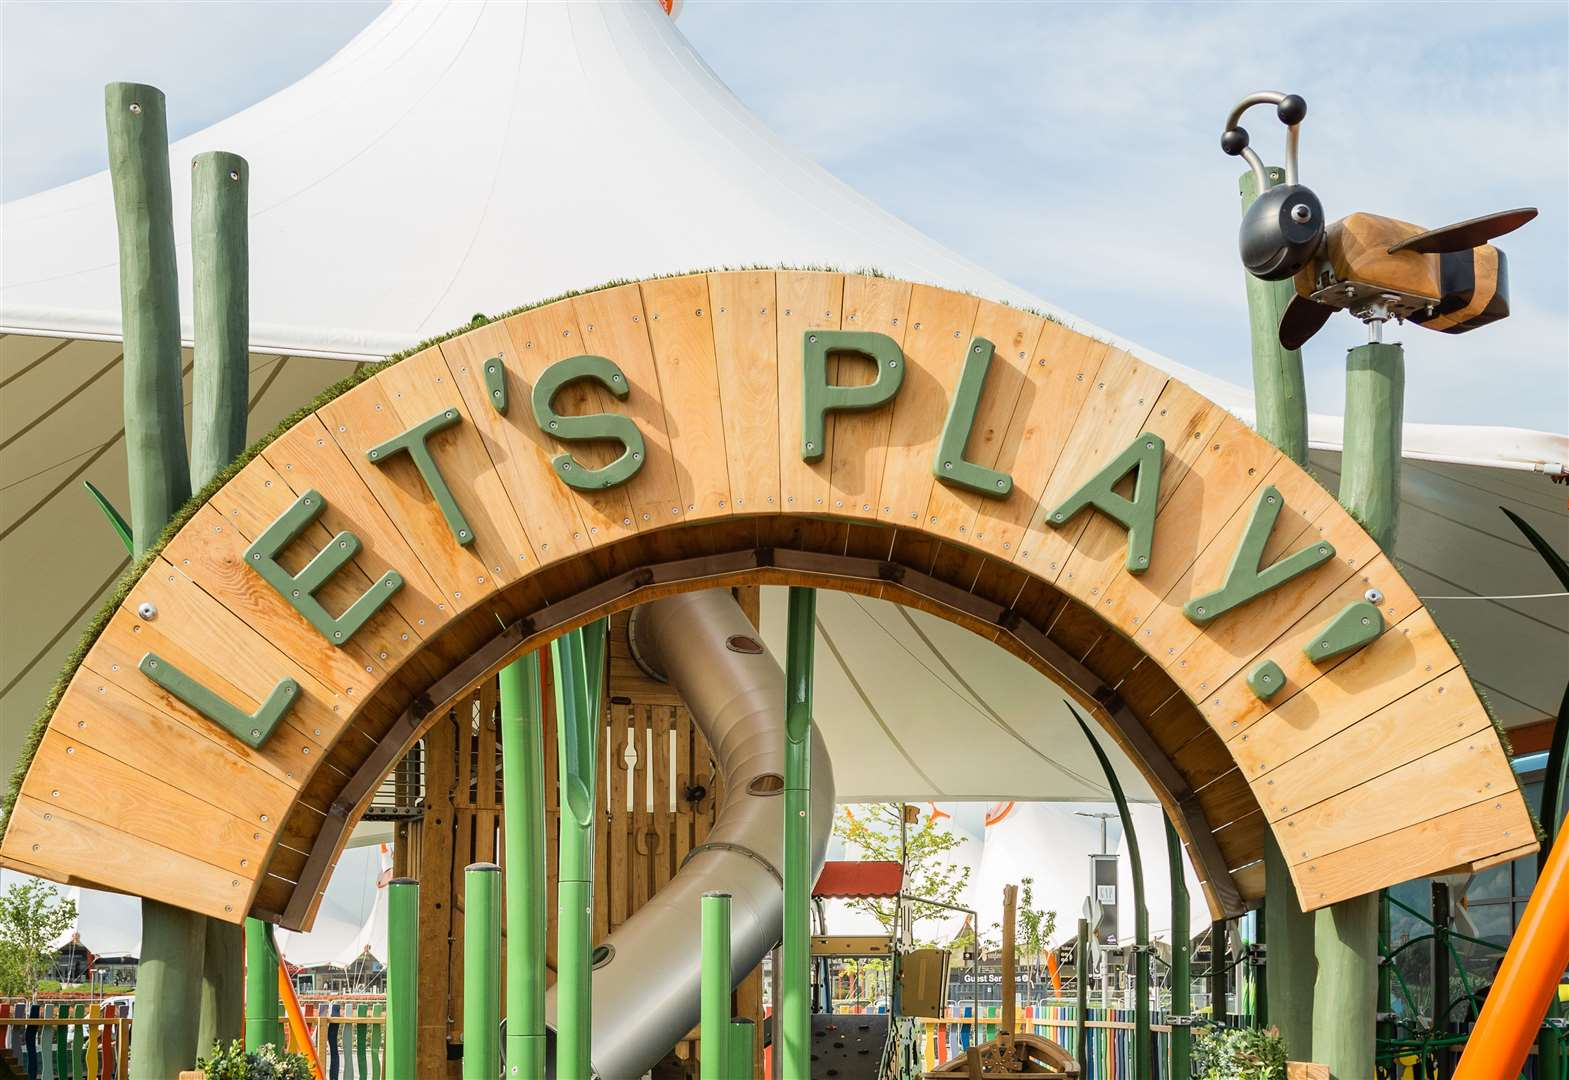 Calls for playground safety review